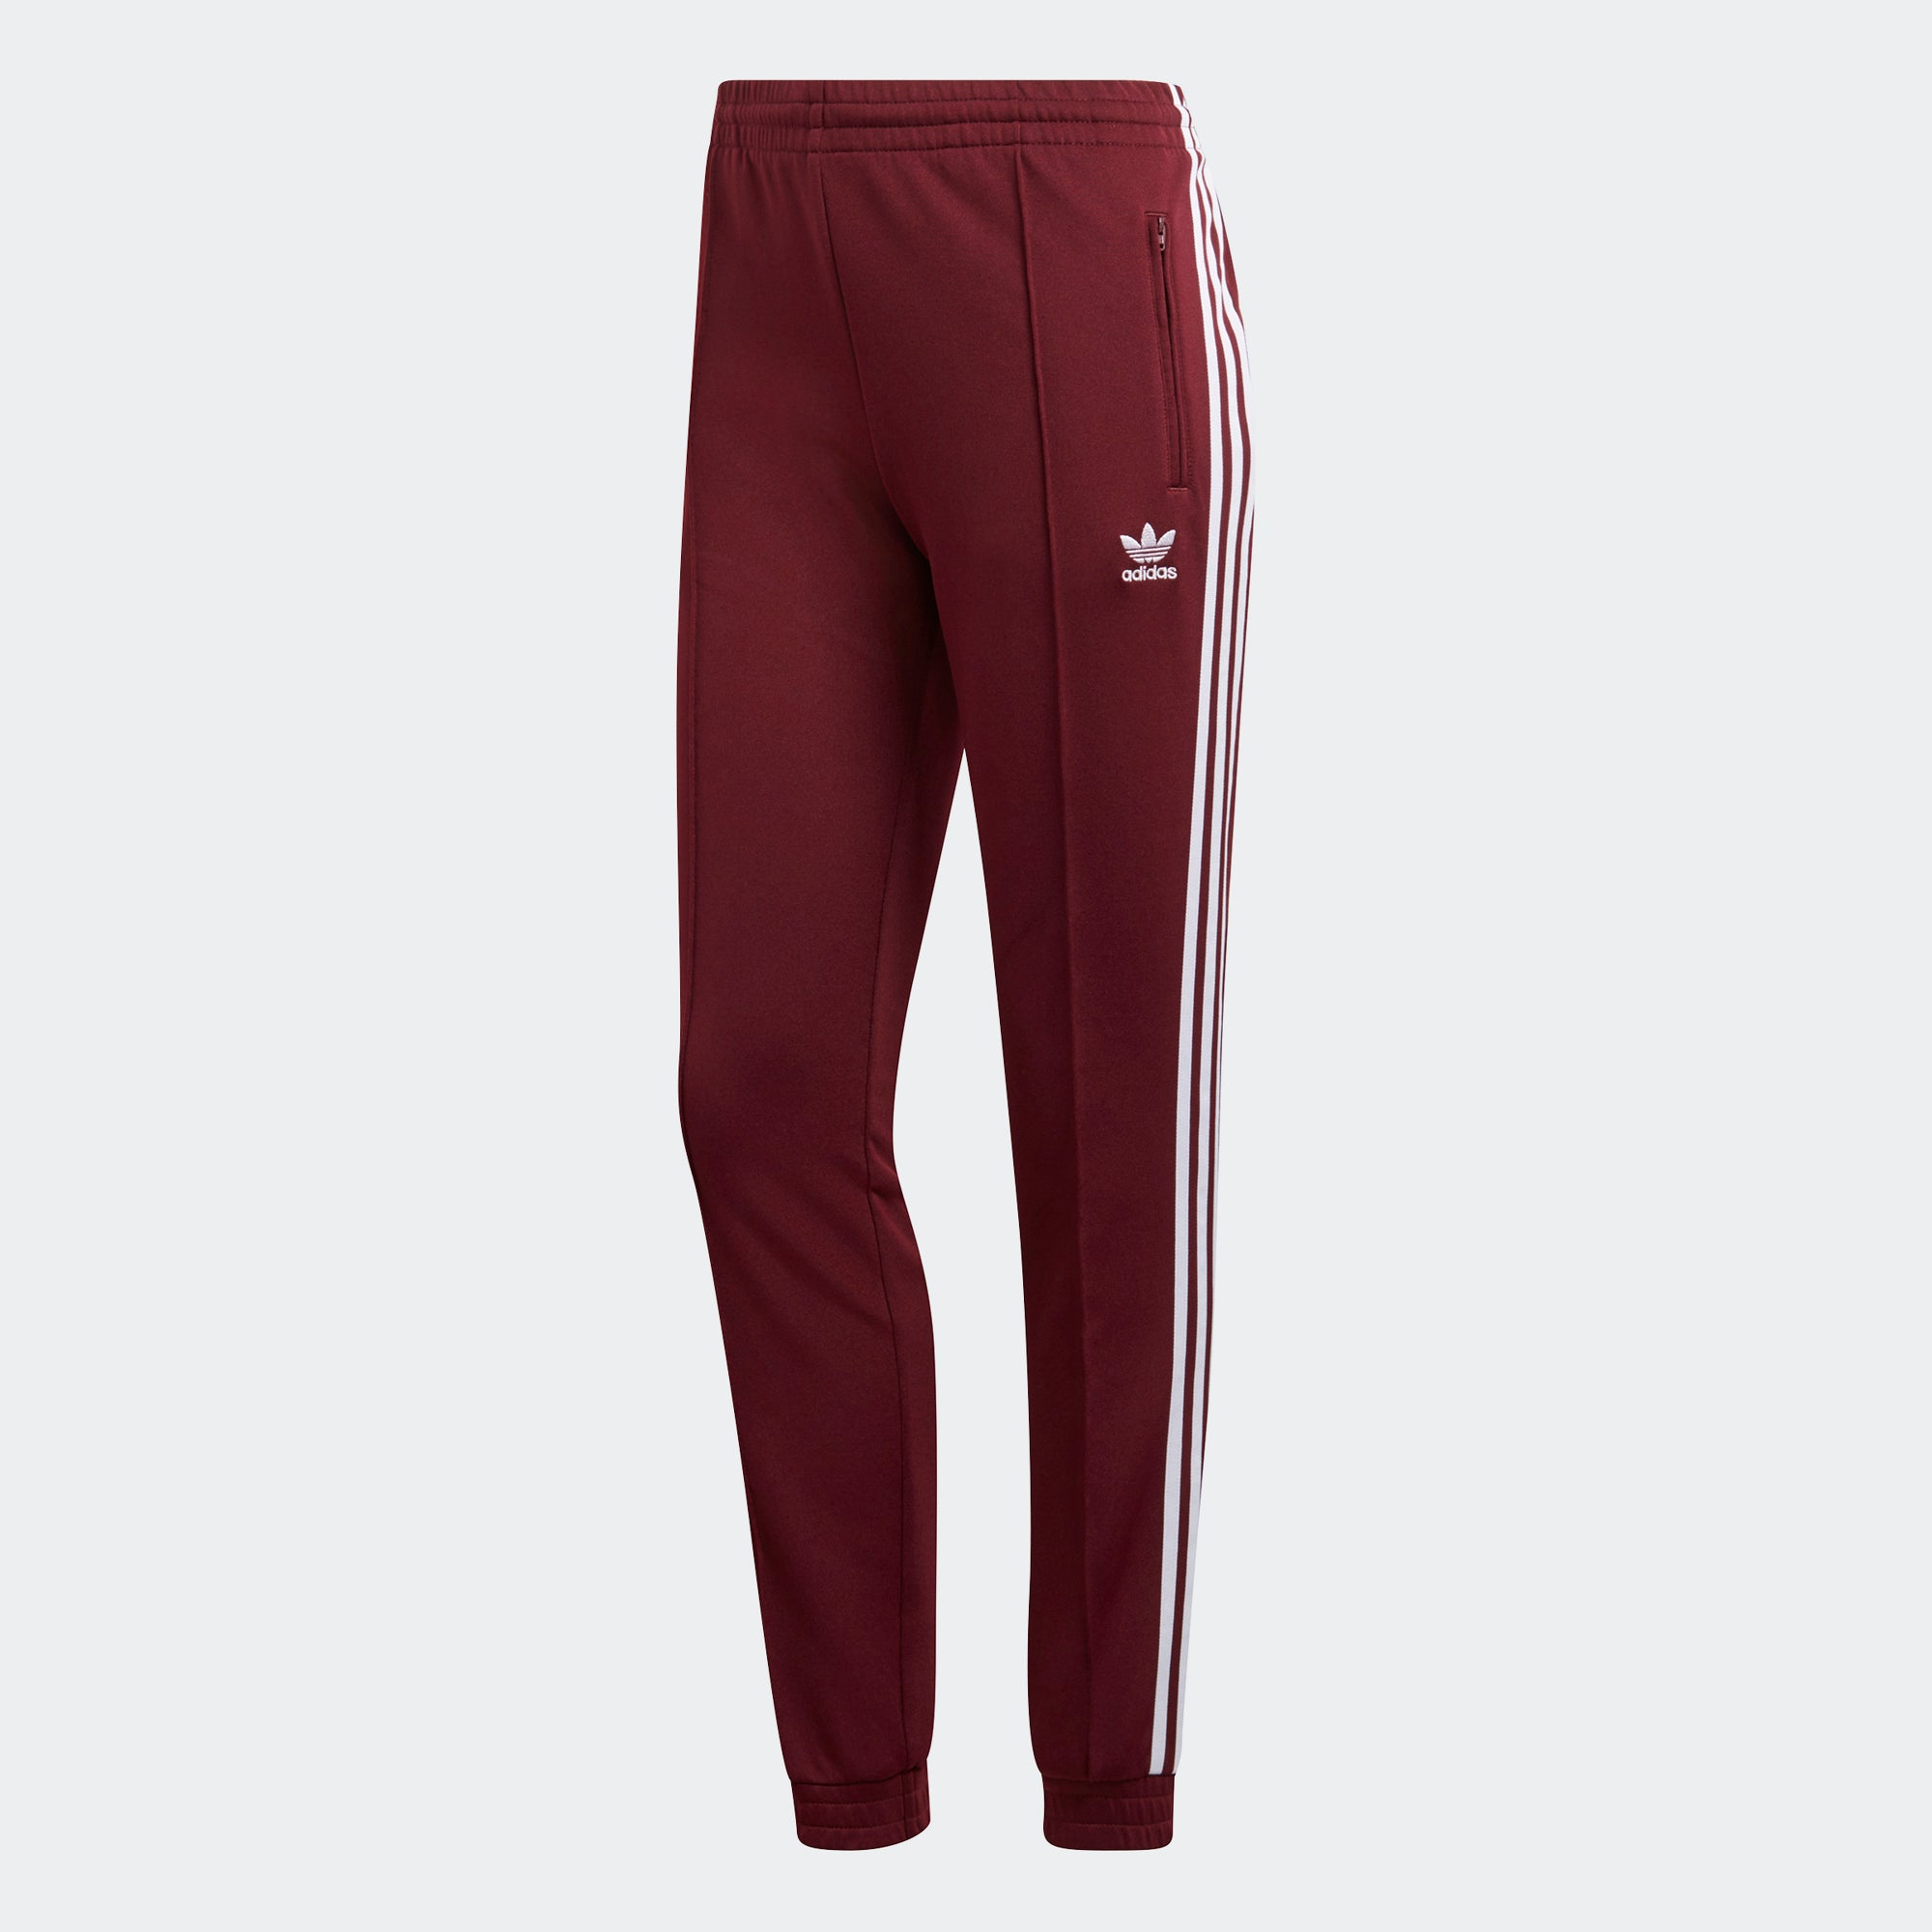 adidas CLRDO SST Track Pants Maroon DH2998   Chicago City Sports